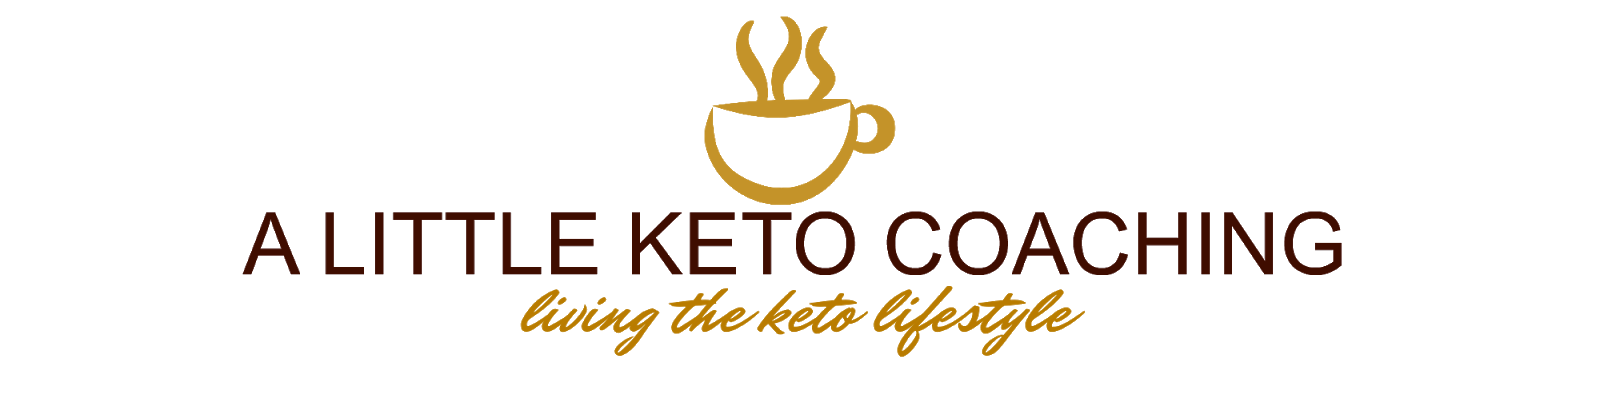 A Little Keto Coaching